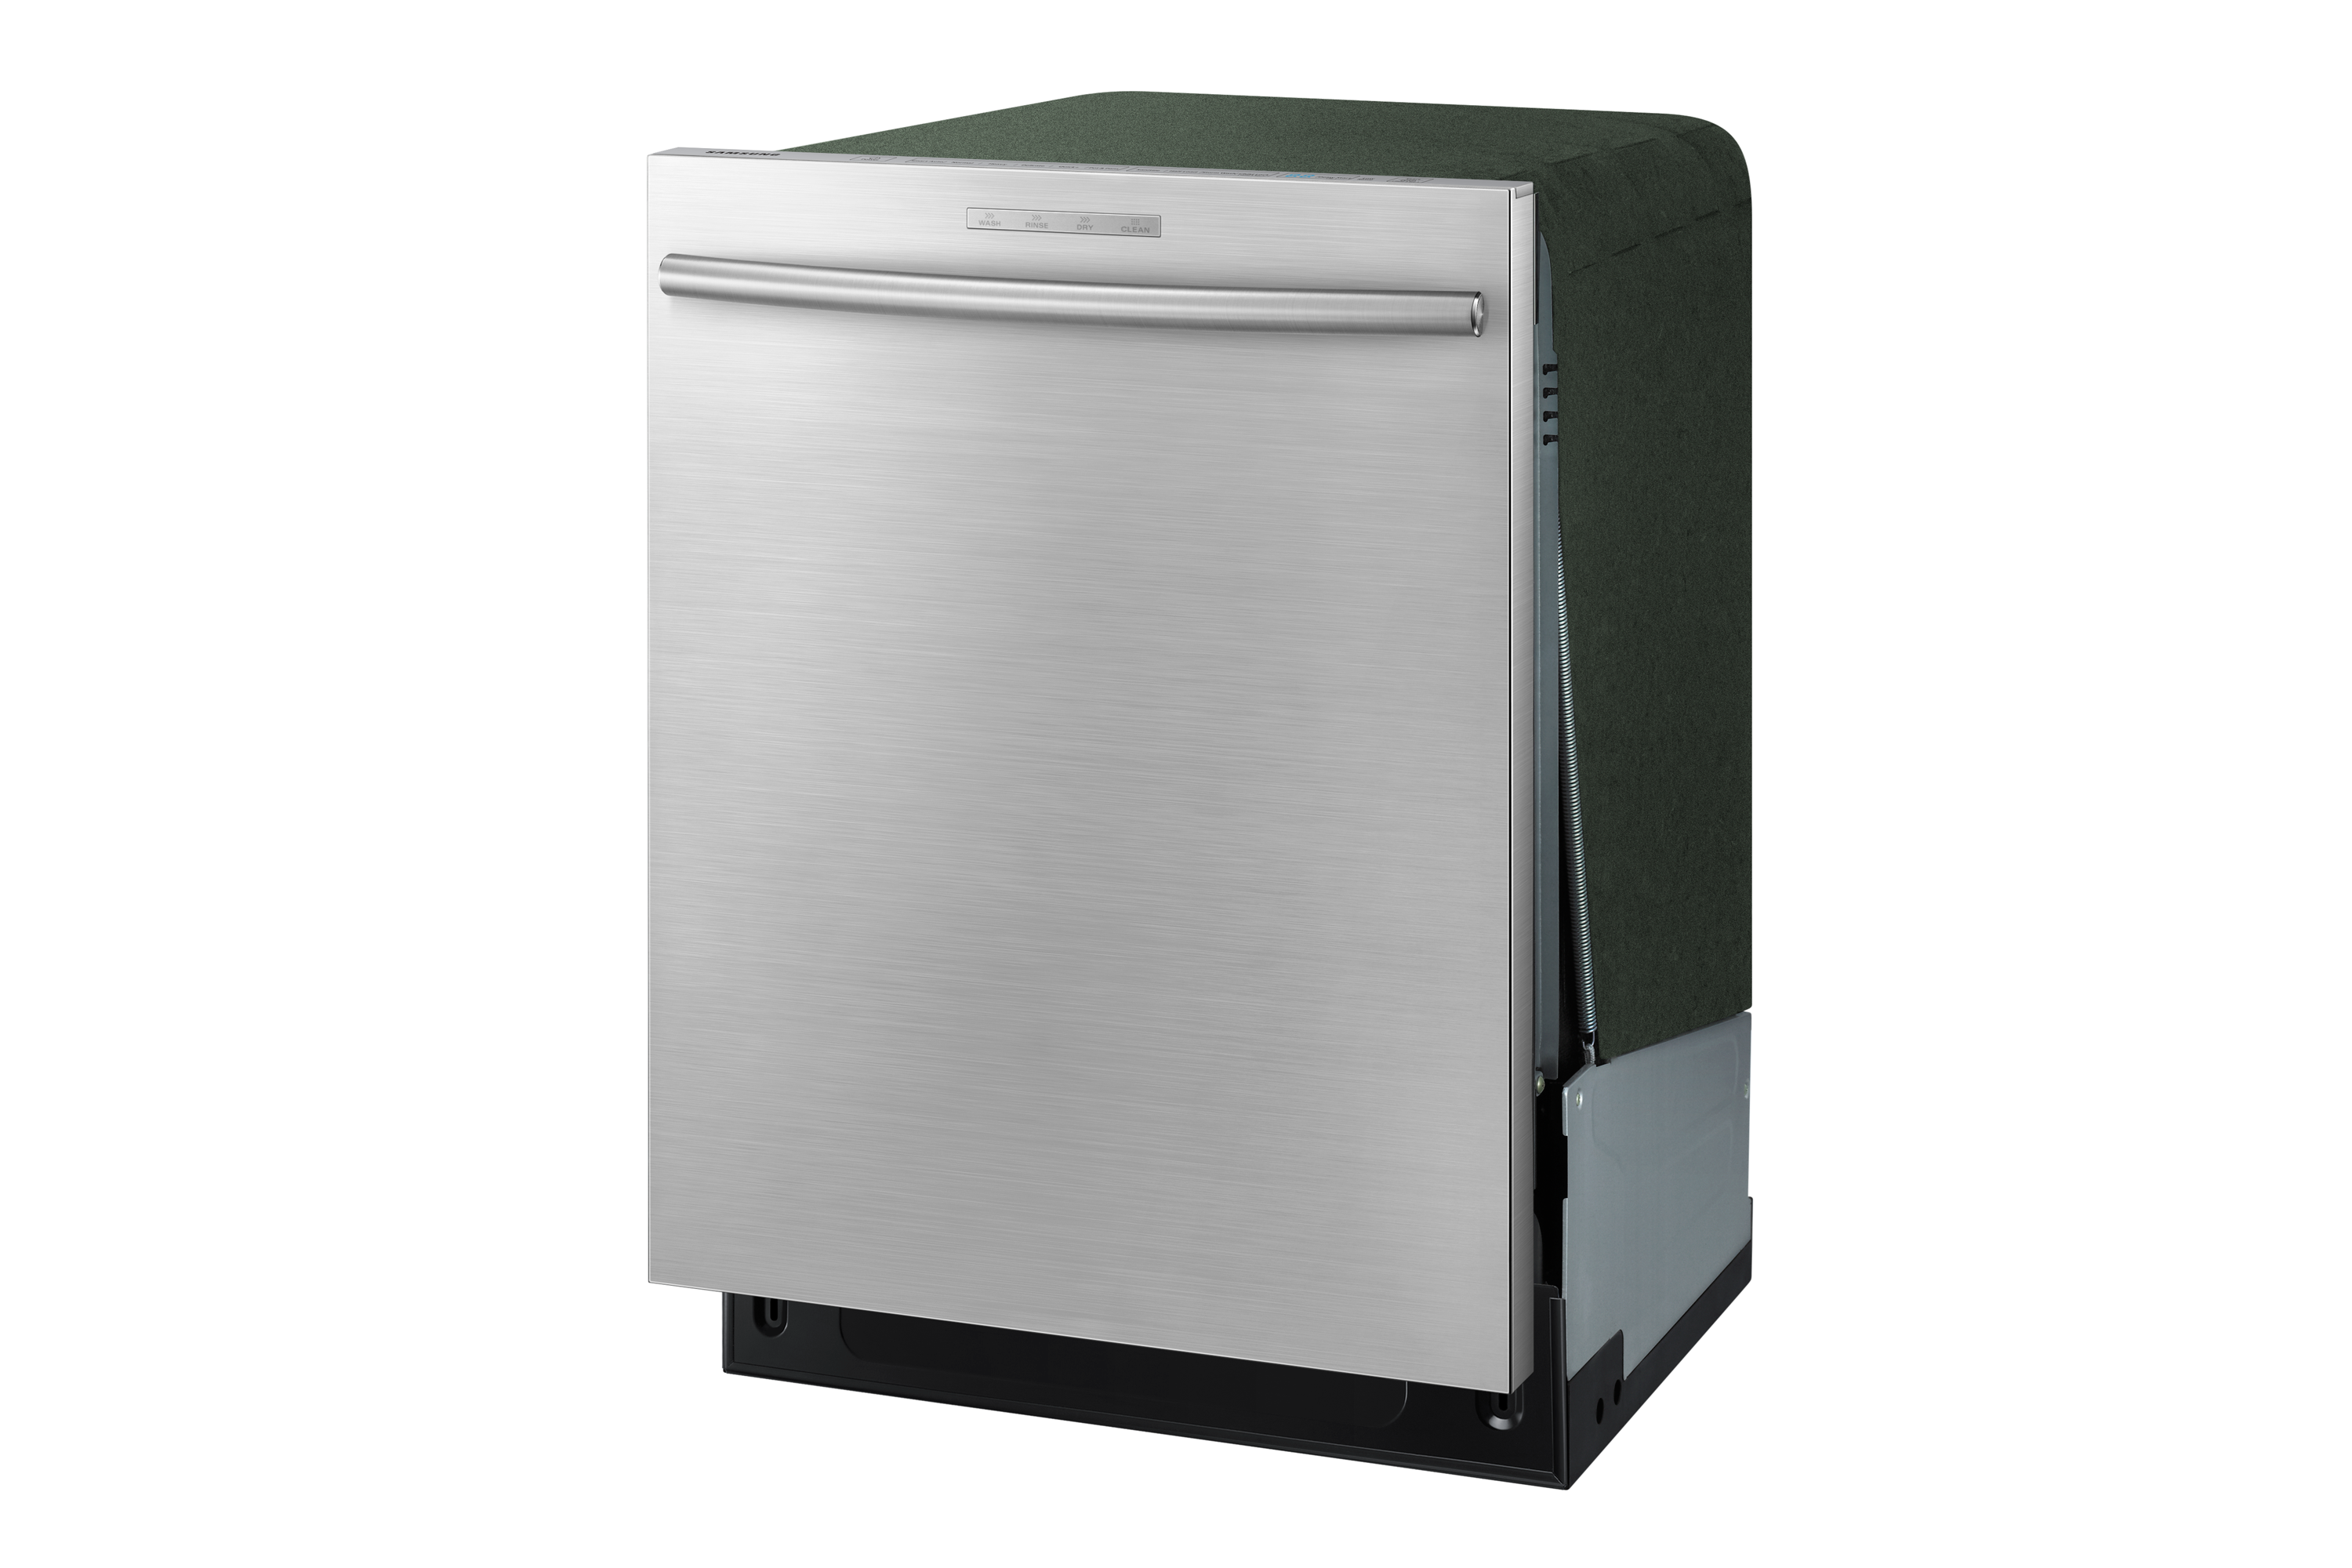 DW-F800A 46 dBA Dishwasher (Stainless Steel)